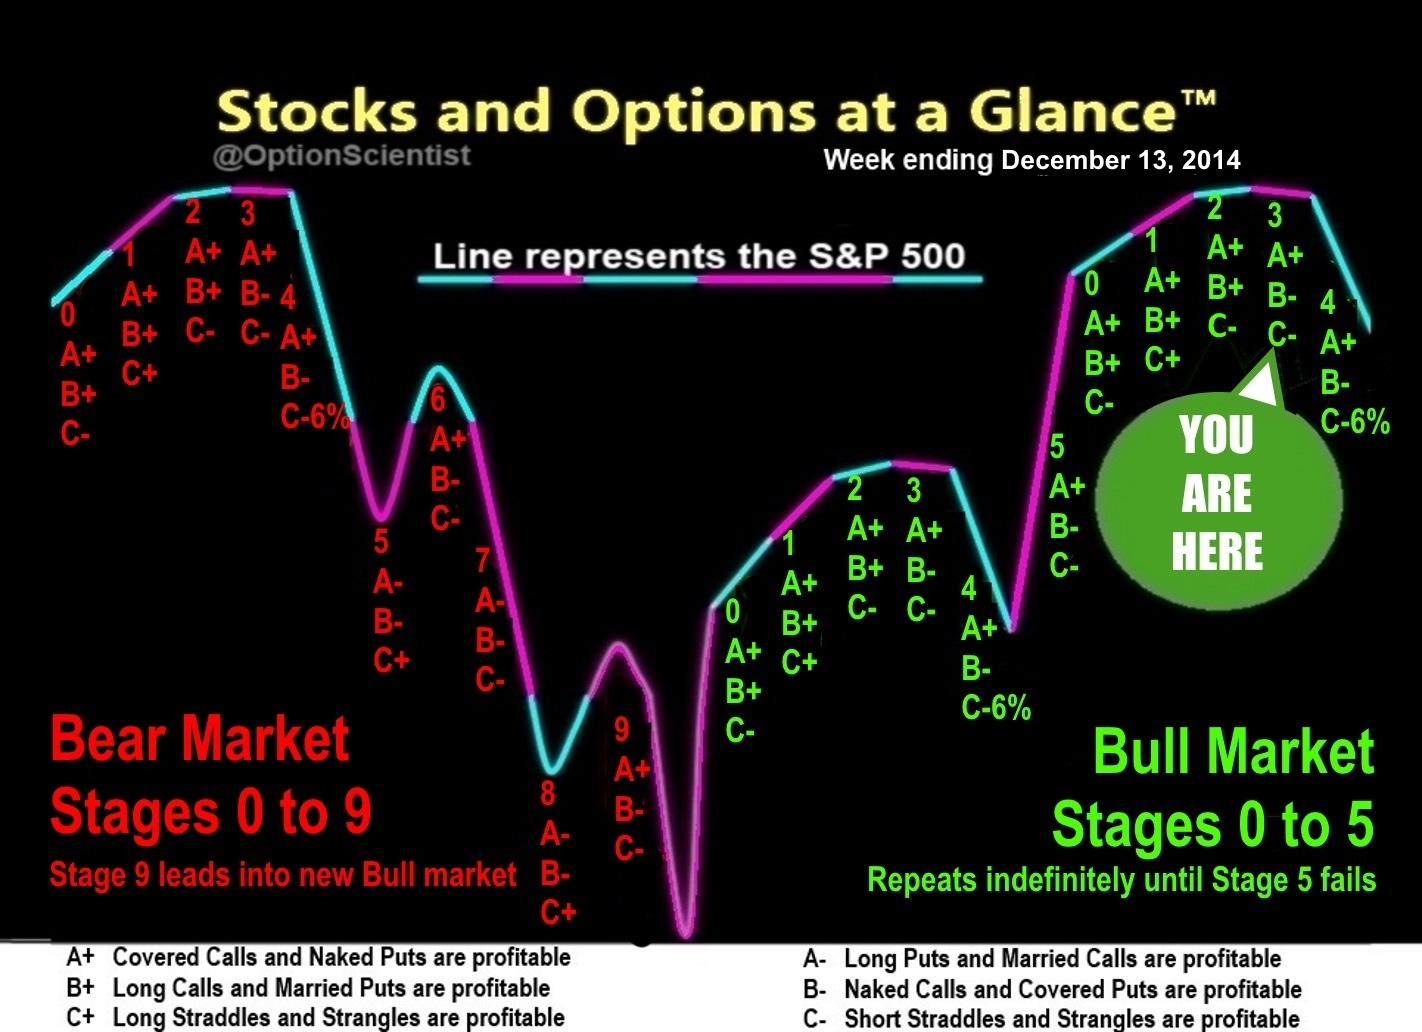 Stocks and Options at a Glance 12-13-14